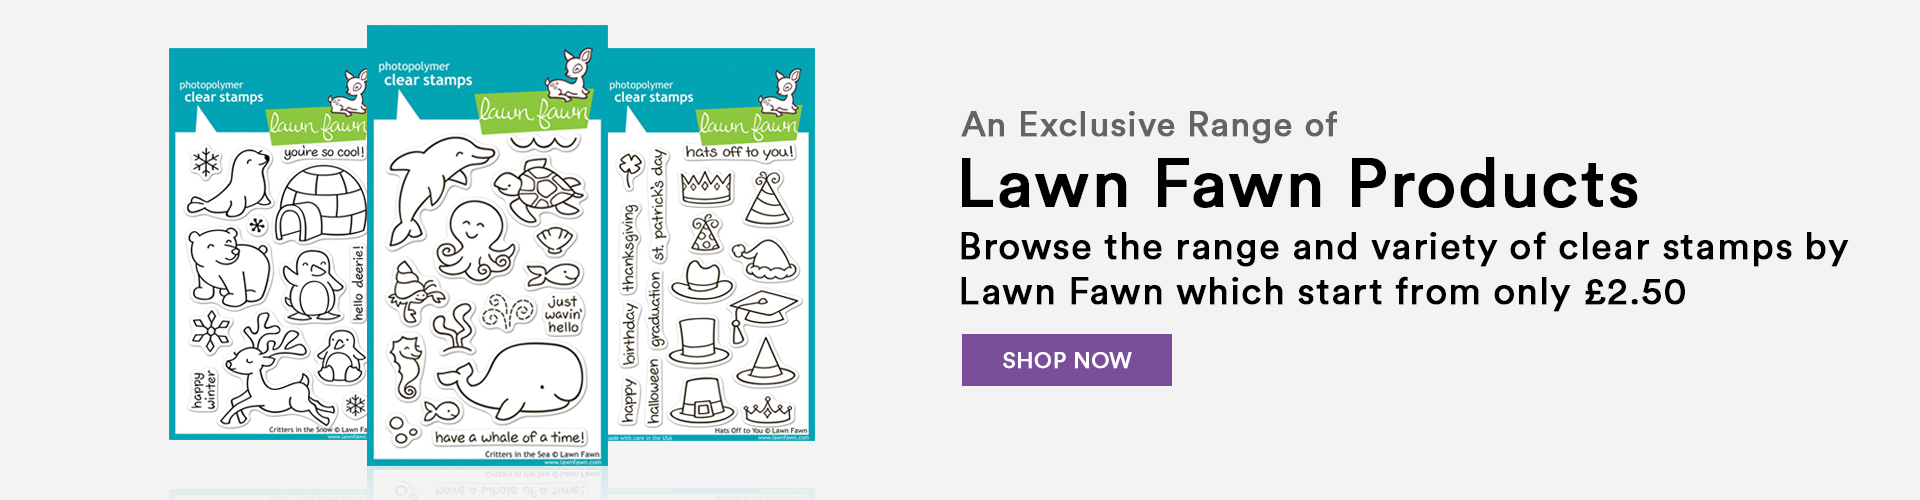 Lawn Fawn Banner